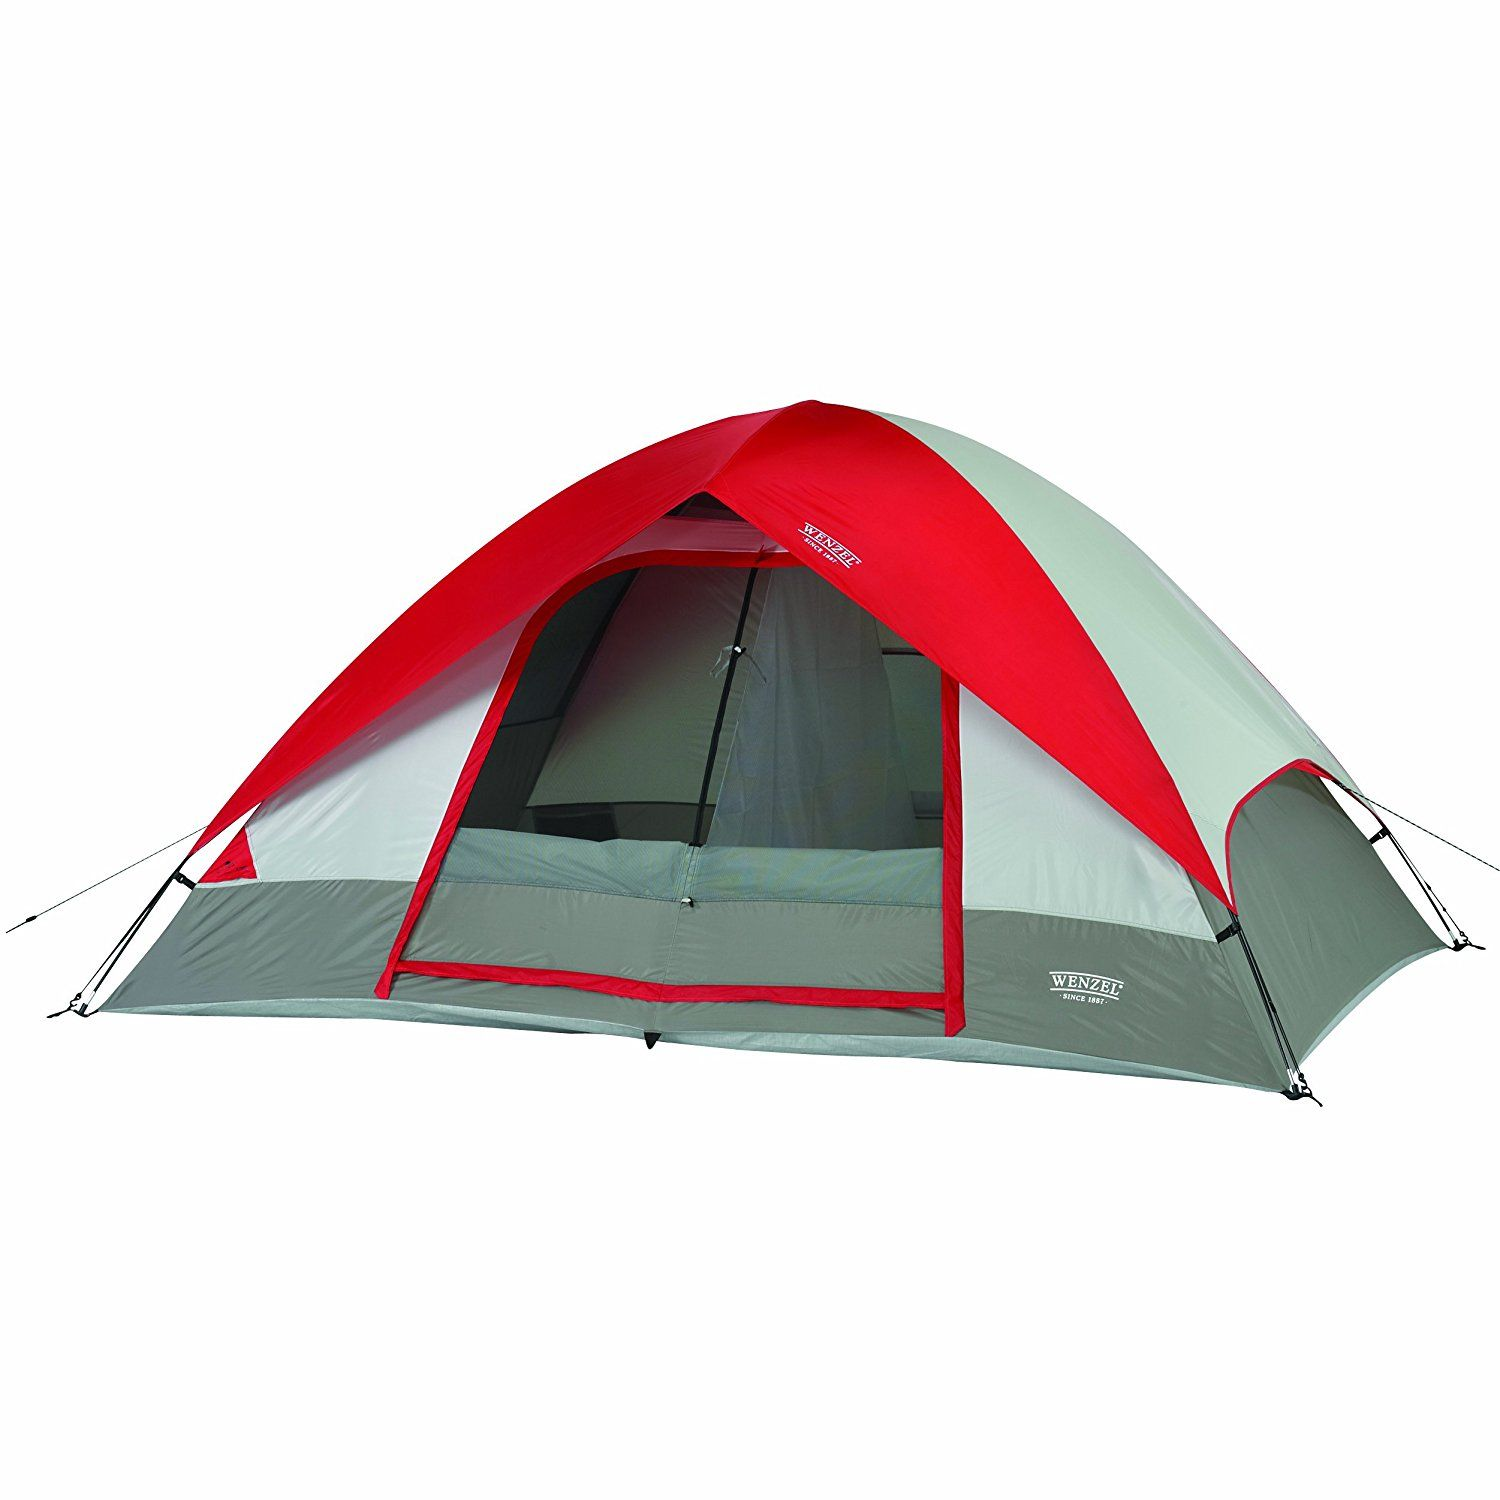 Pine Ridge 5 10 x 8 Foot 4-5 Person 2-Room Dome Tent - Red best 4 person tent 2019 tent c&ing tents 4 person tent backpacking tent big tent tents for ...  sc 1 st  Pinterest & Pine Ridge 5 10 x 8 Foot 4-5 Person 2-Room Dome Tent - Red best 4 ...